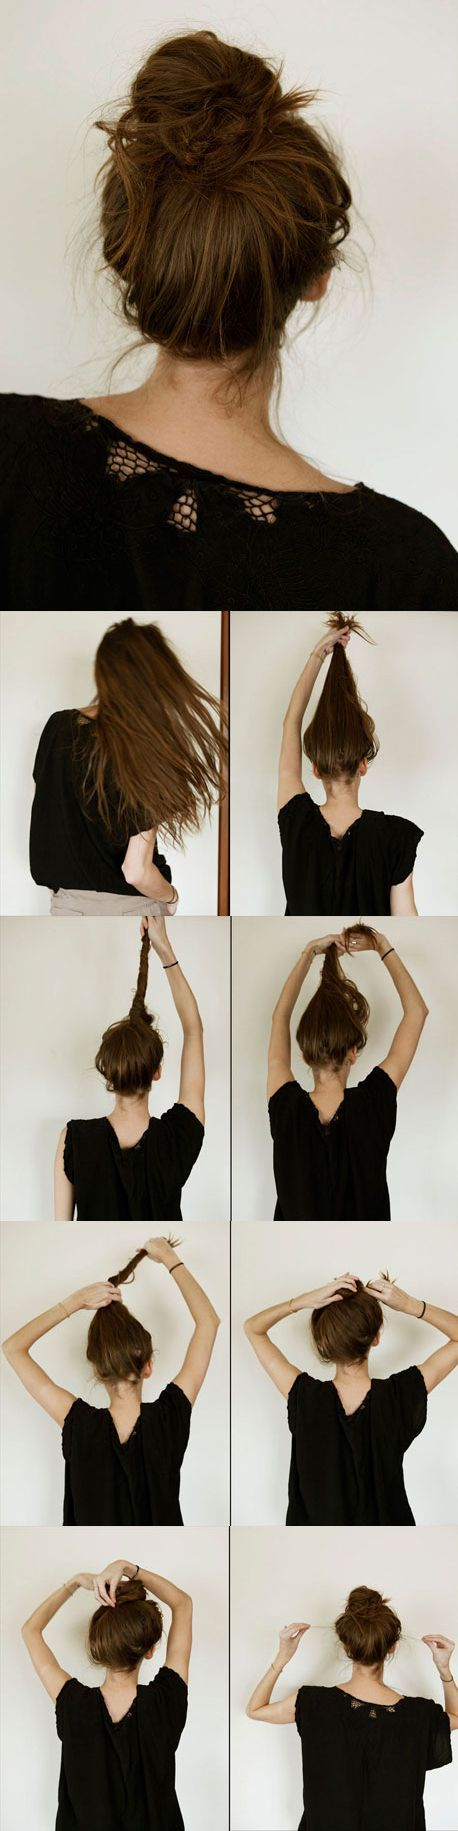 Fun bun Hair tutorial that can work with any outfit